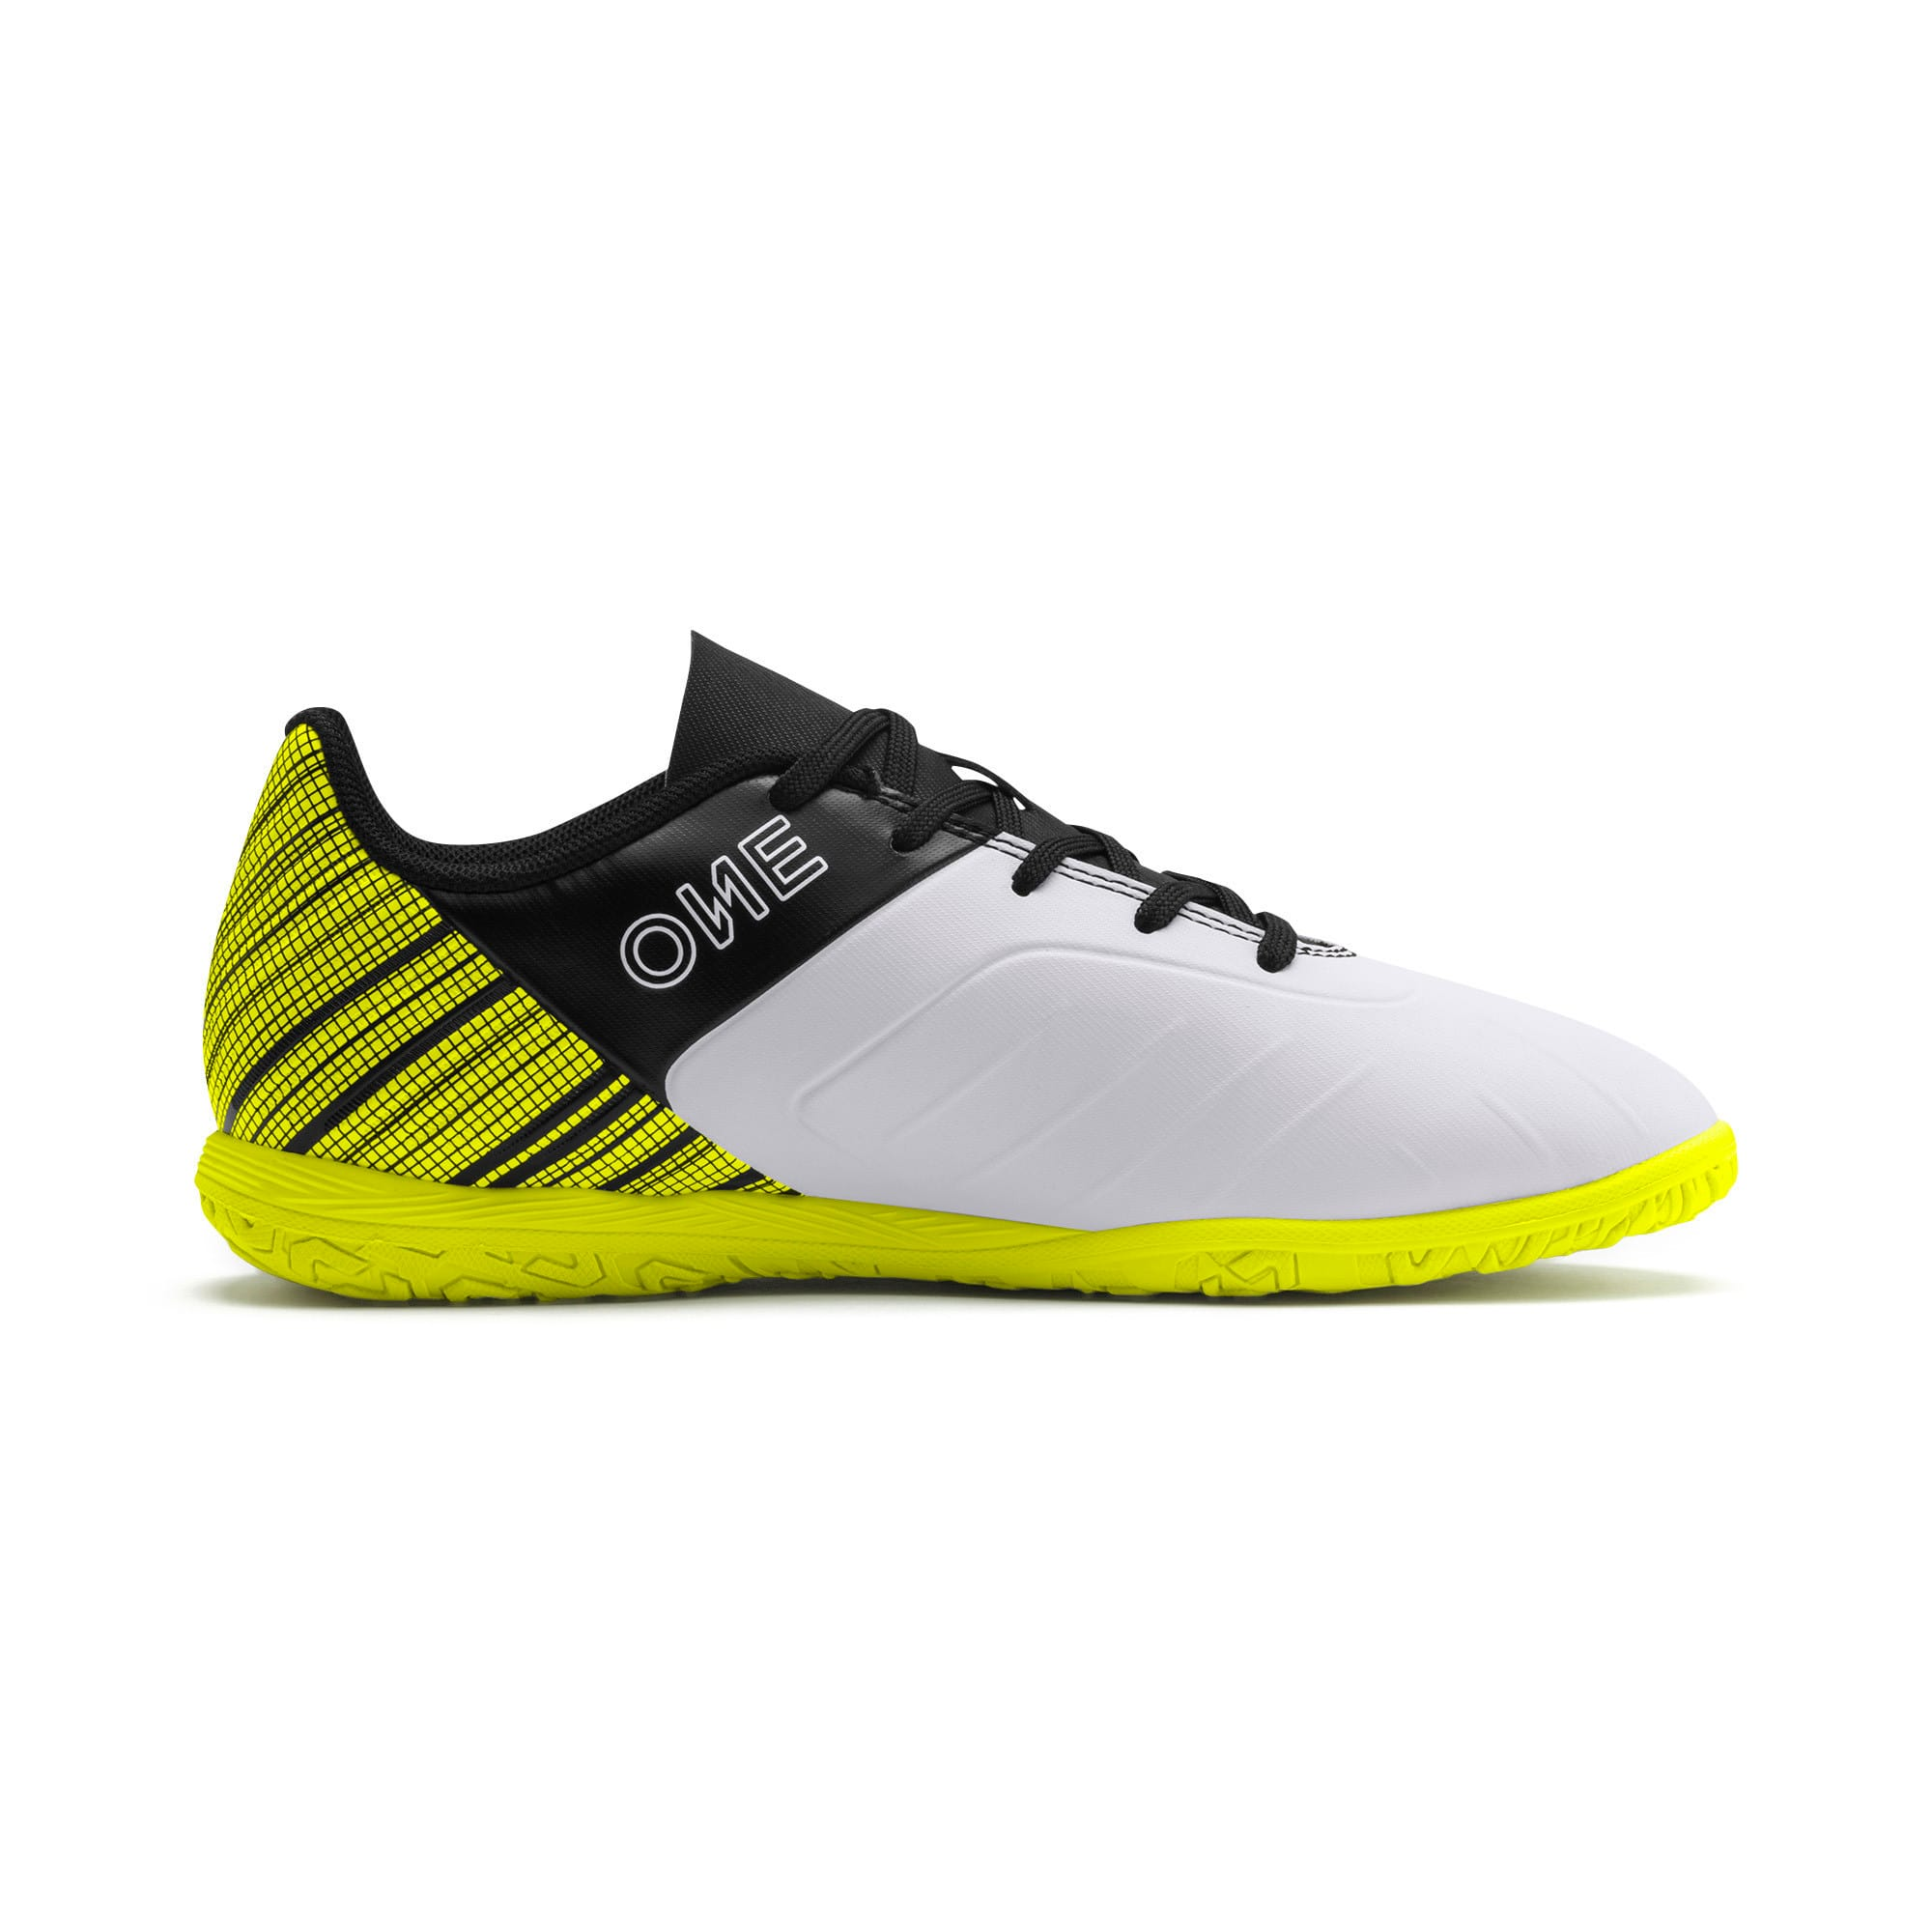 Thumbnail 5 of PUMA ONE 5.4 IT Youth Football Boots, White-Black-Yellow Alert, medium